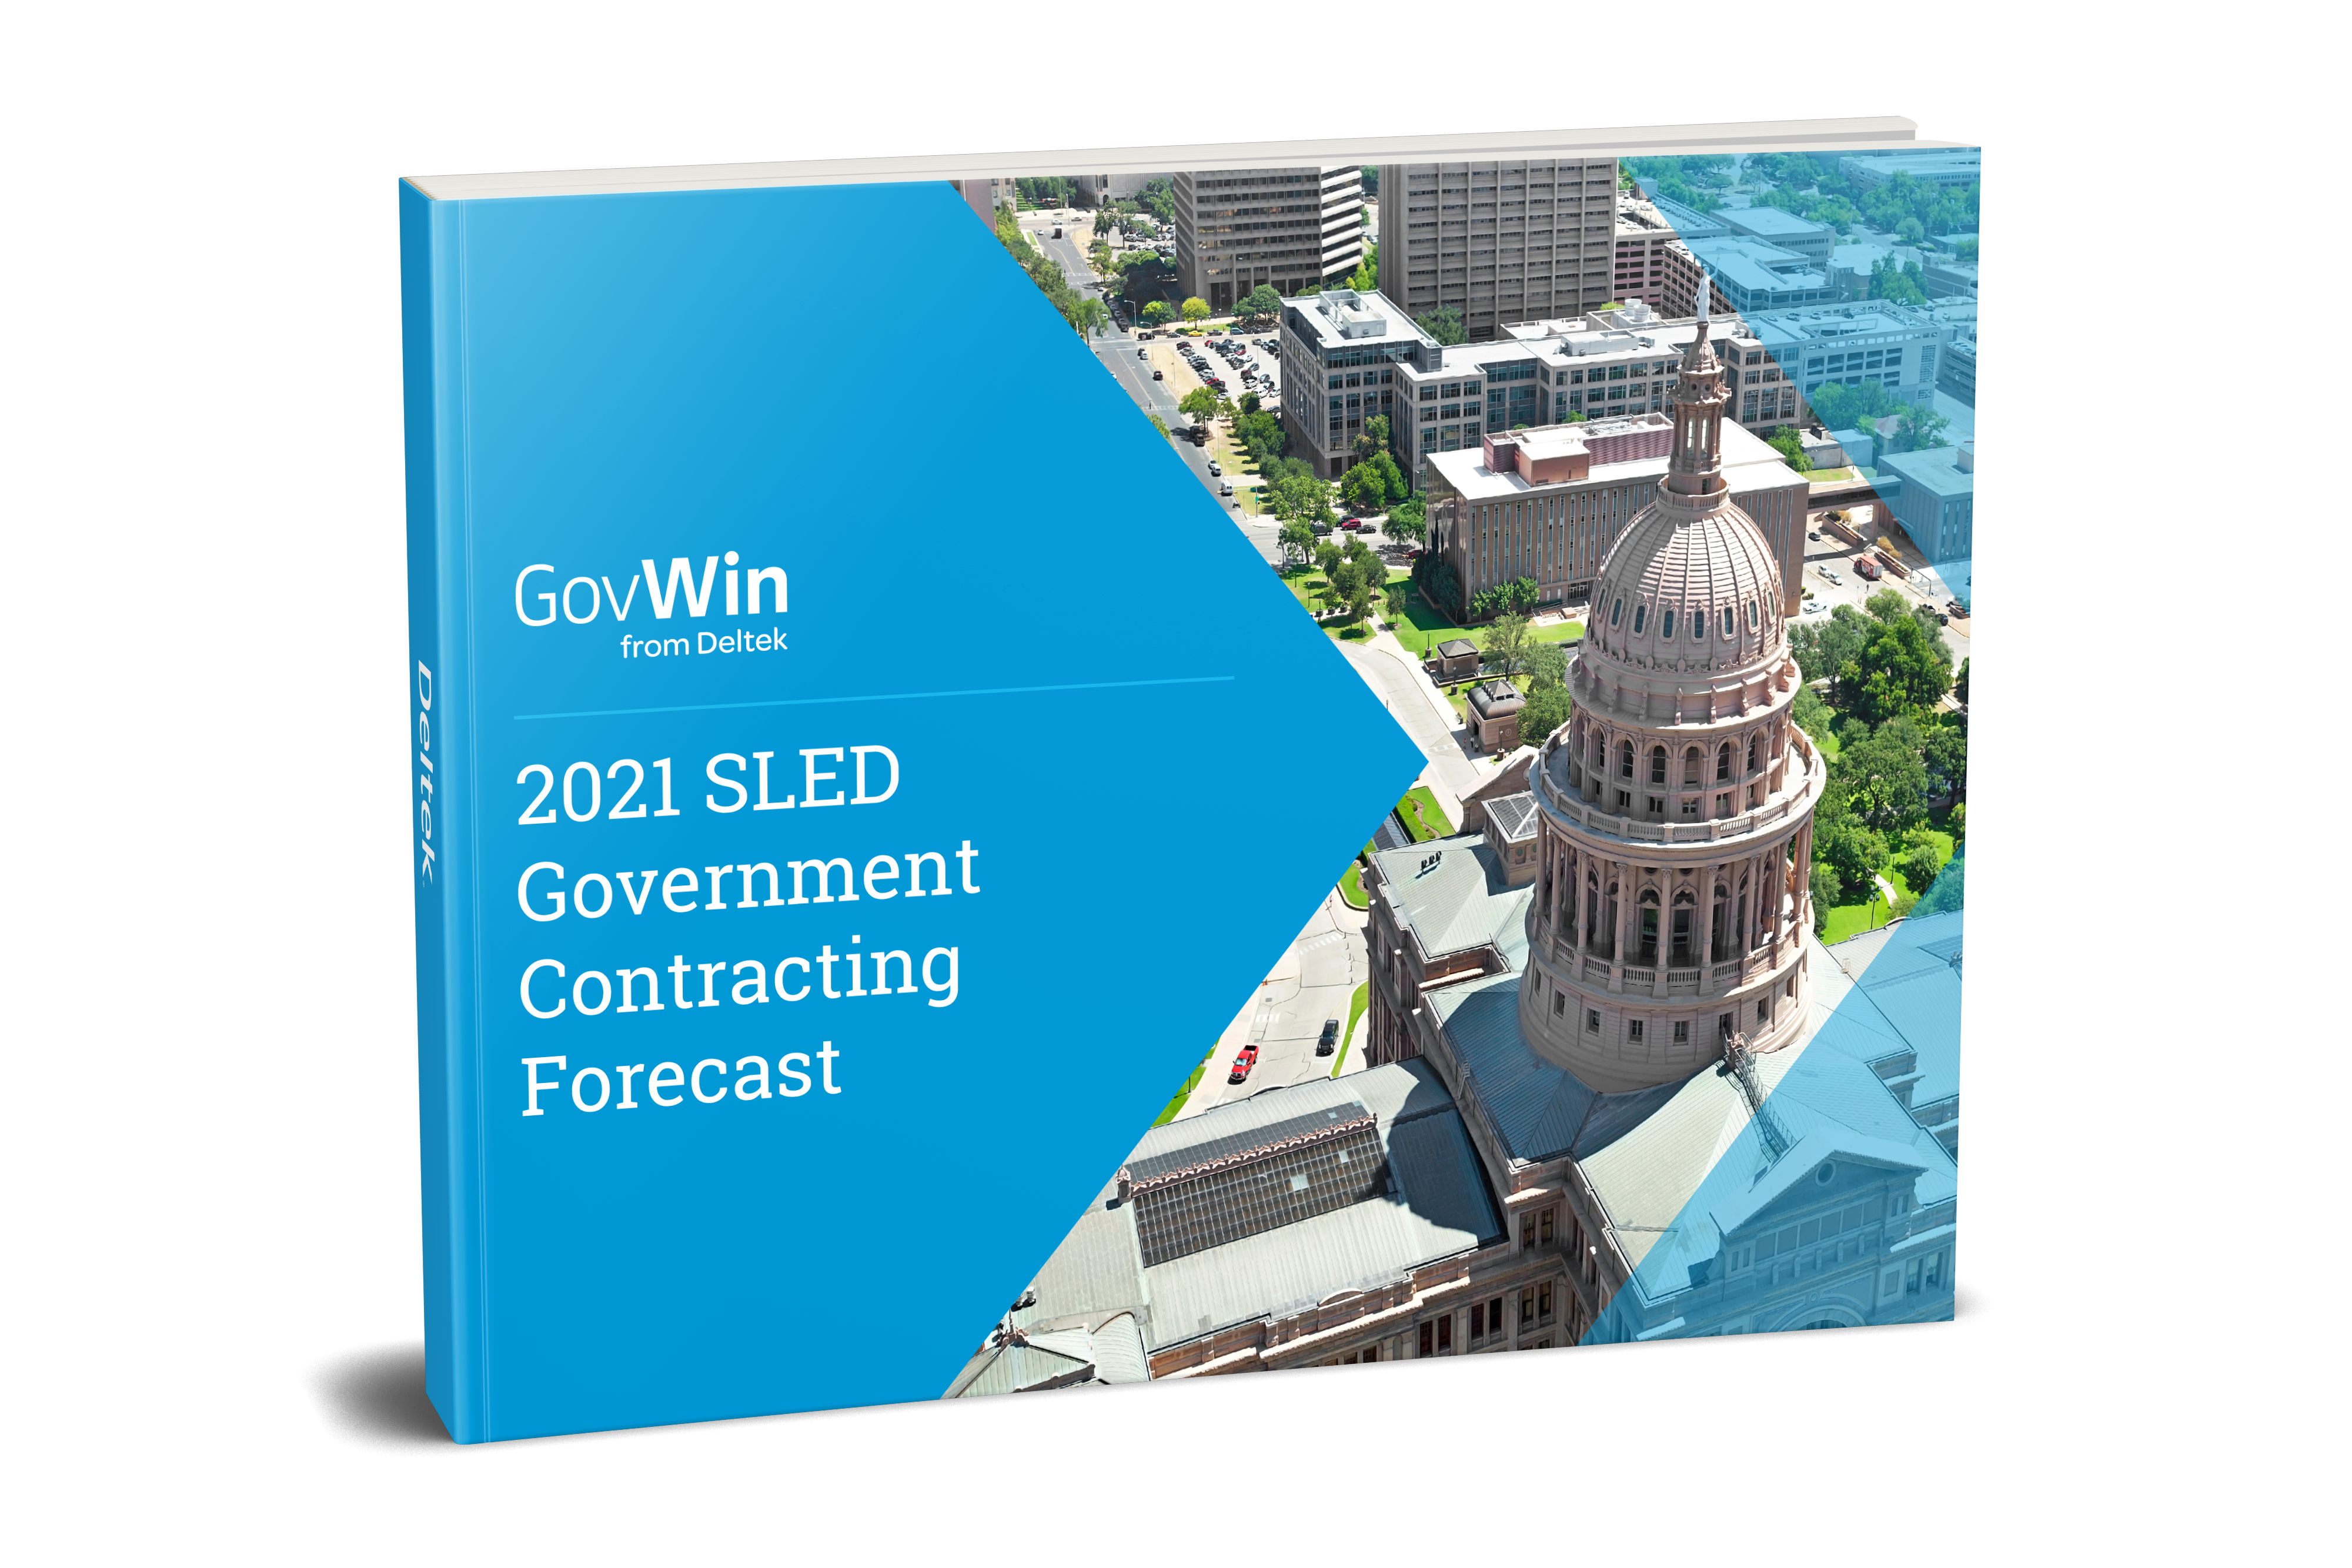 2021 SLED Government Contracting Forecast